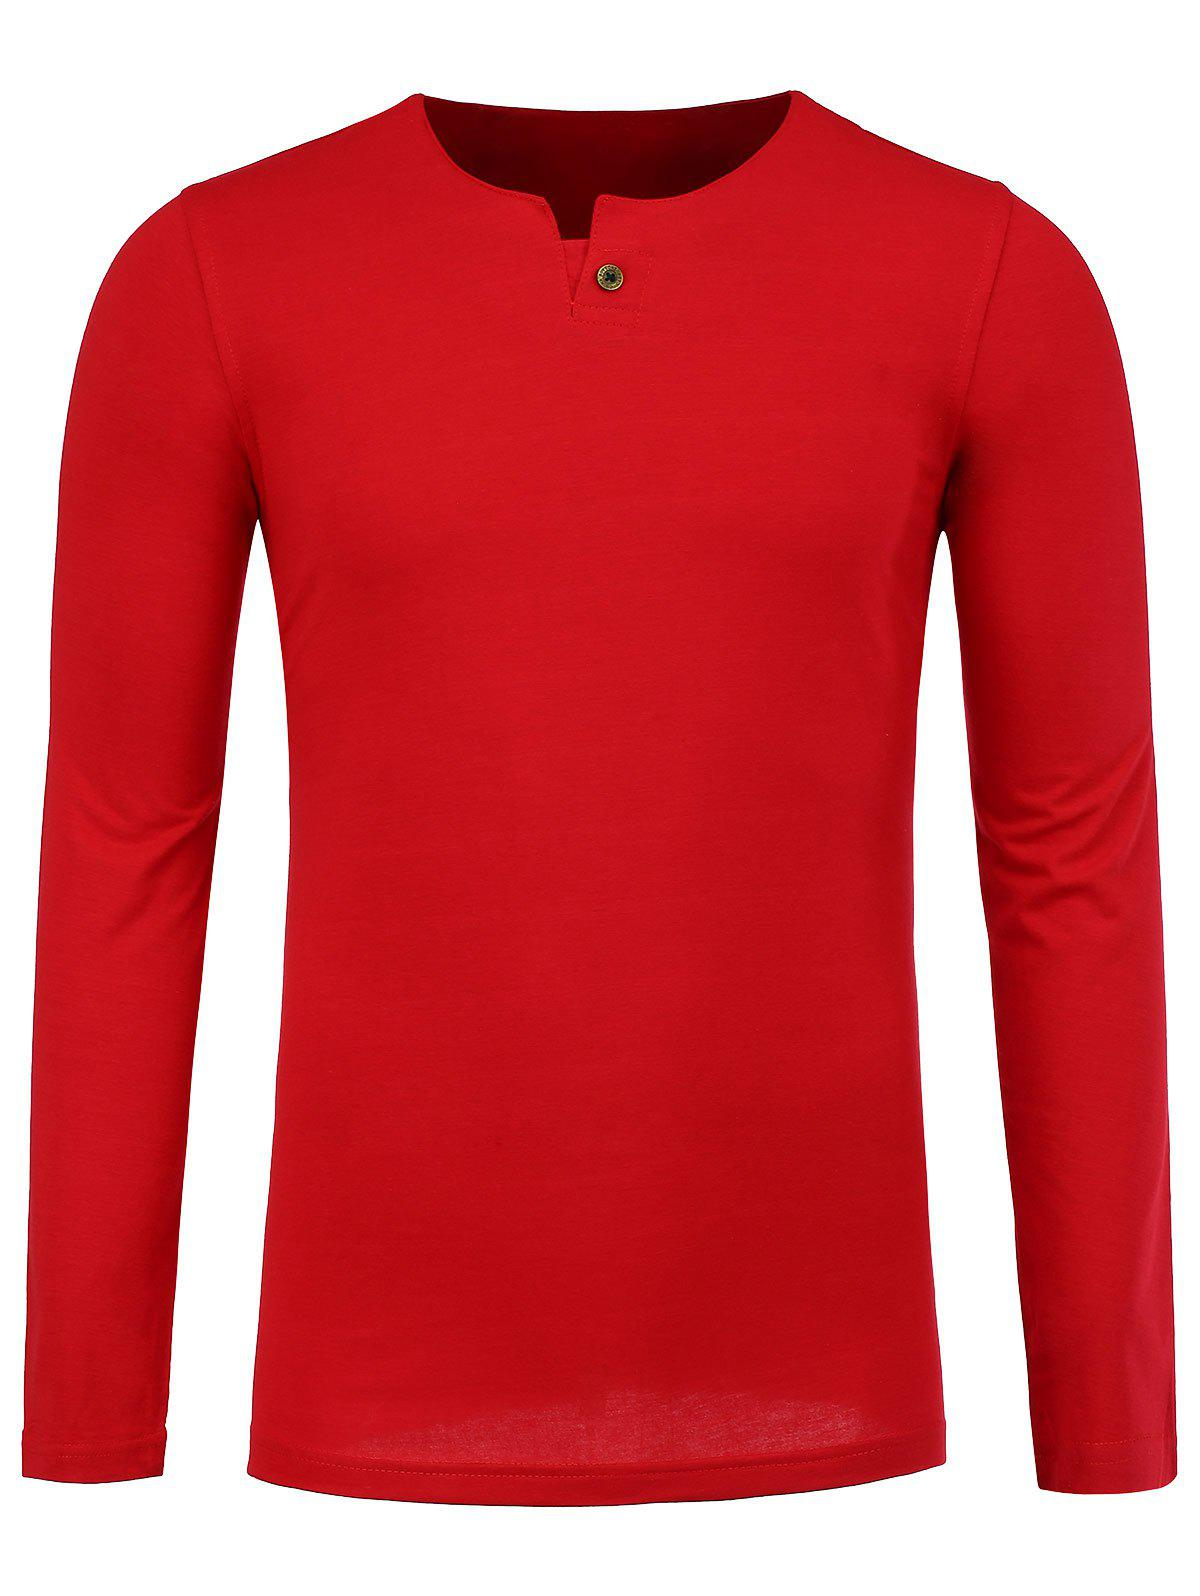 Notch Neck Long Sleeve Tee - RED XL